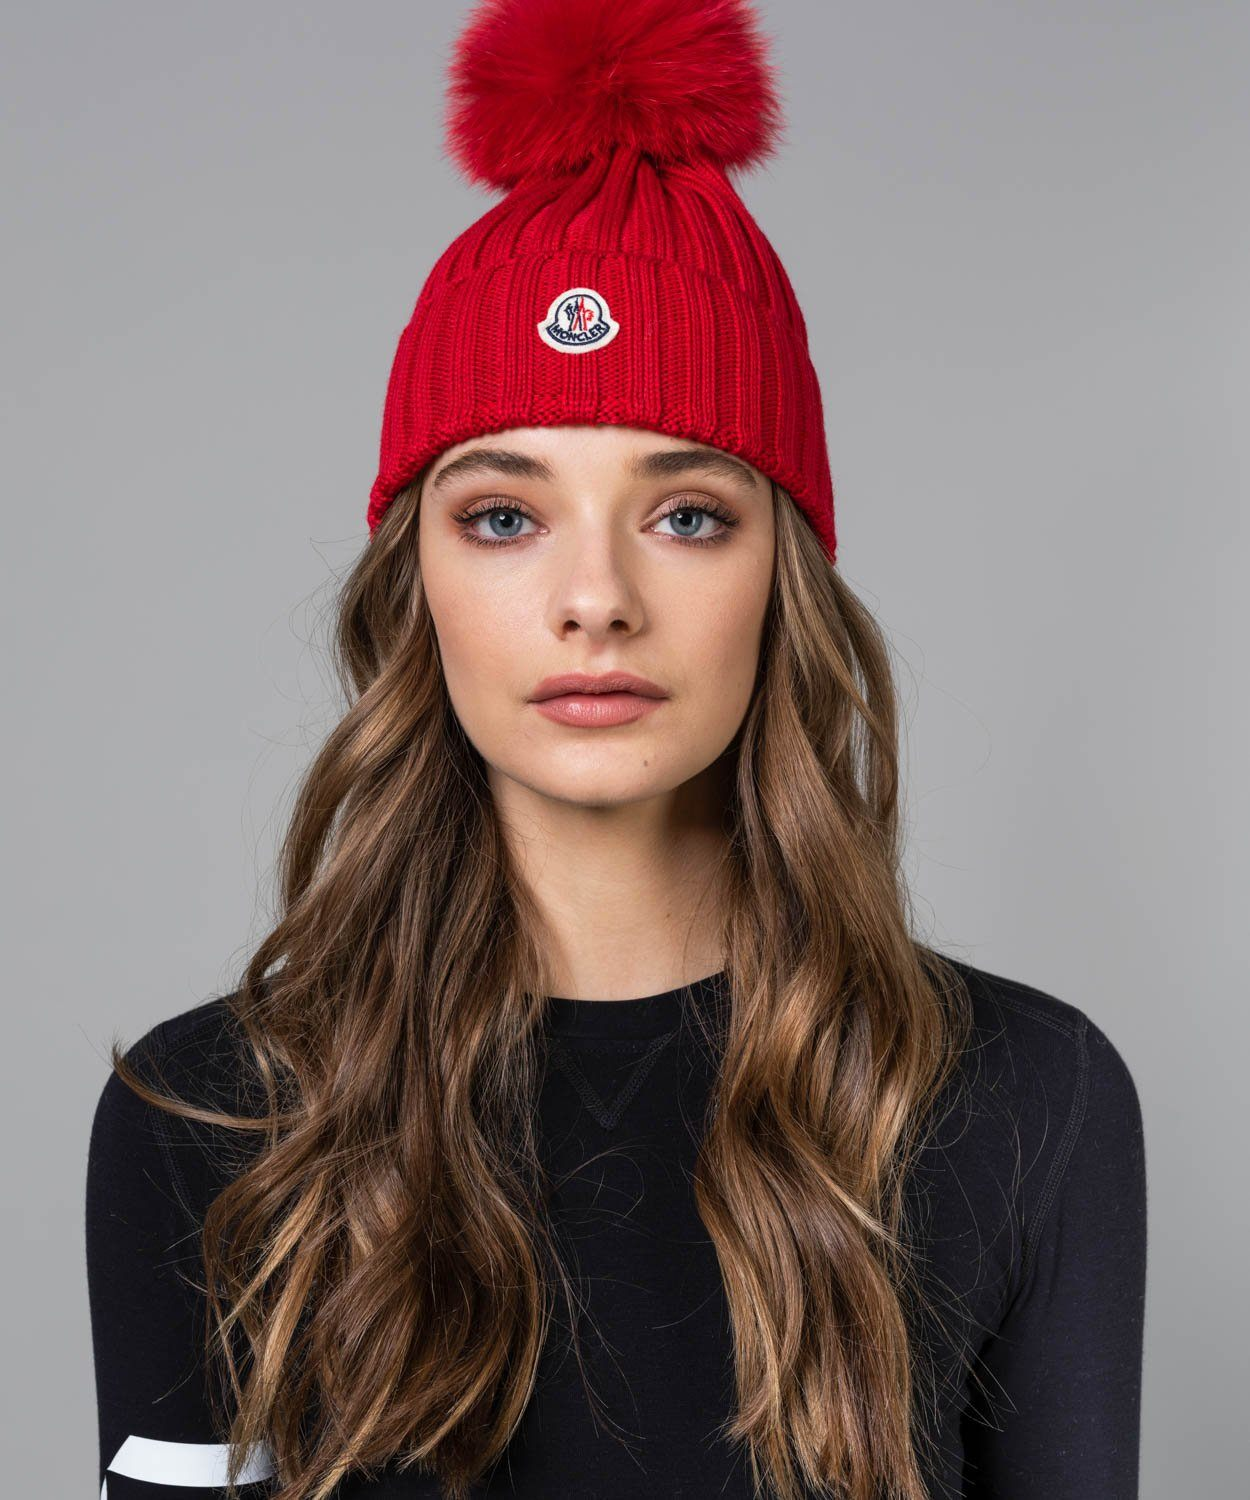 Wool Cable Knit Beanie with Pom Pom Moncler Red OS